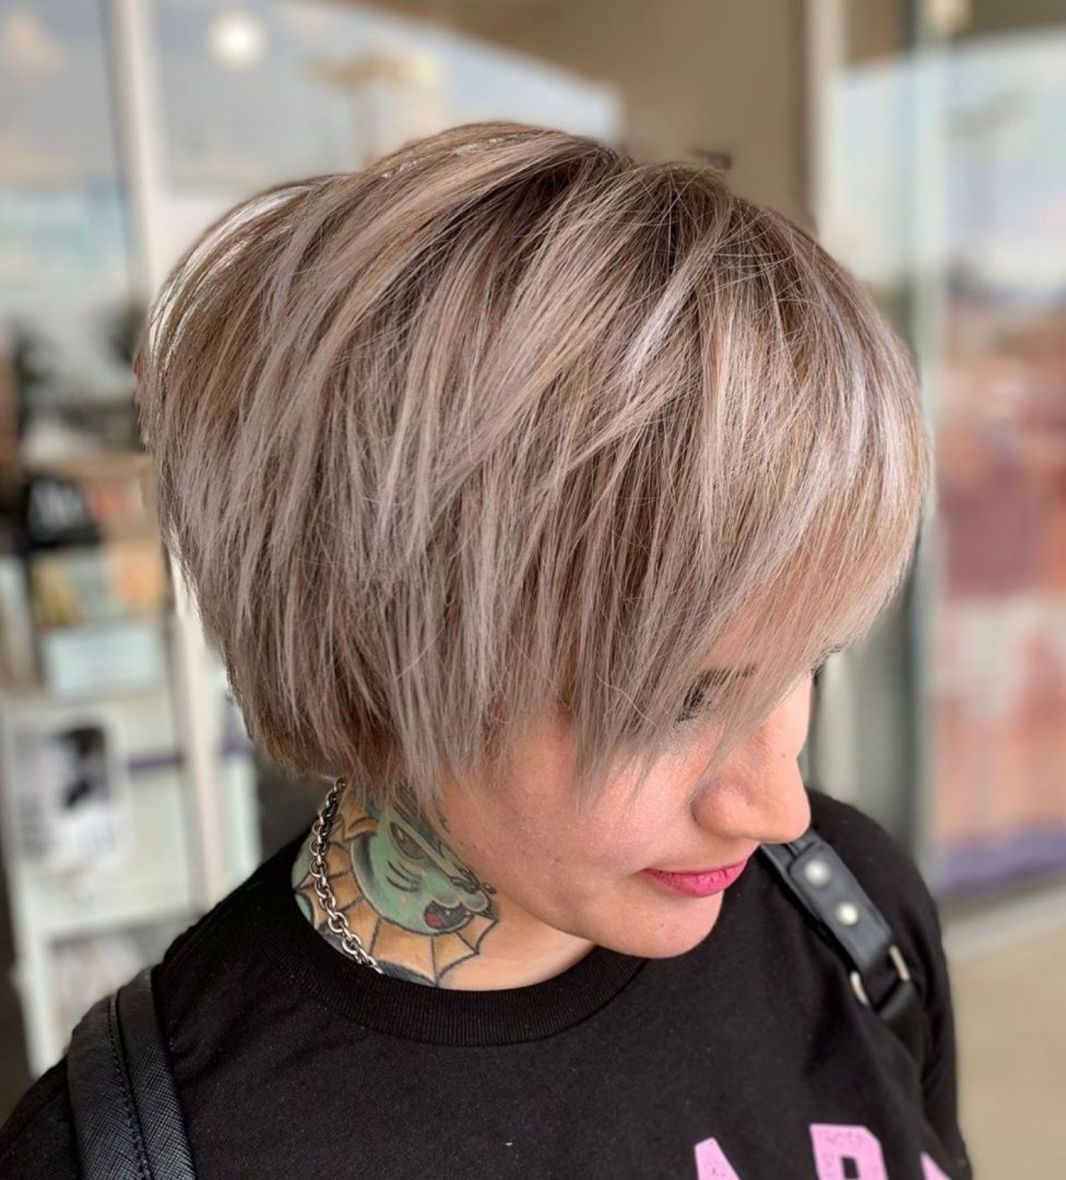 44++ Short straight hairstyles girl ideas in 2021